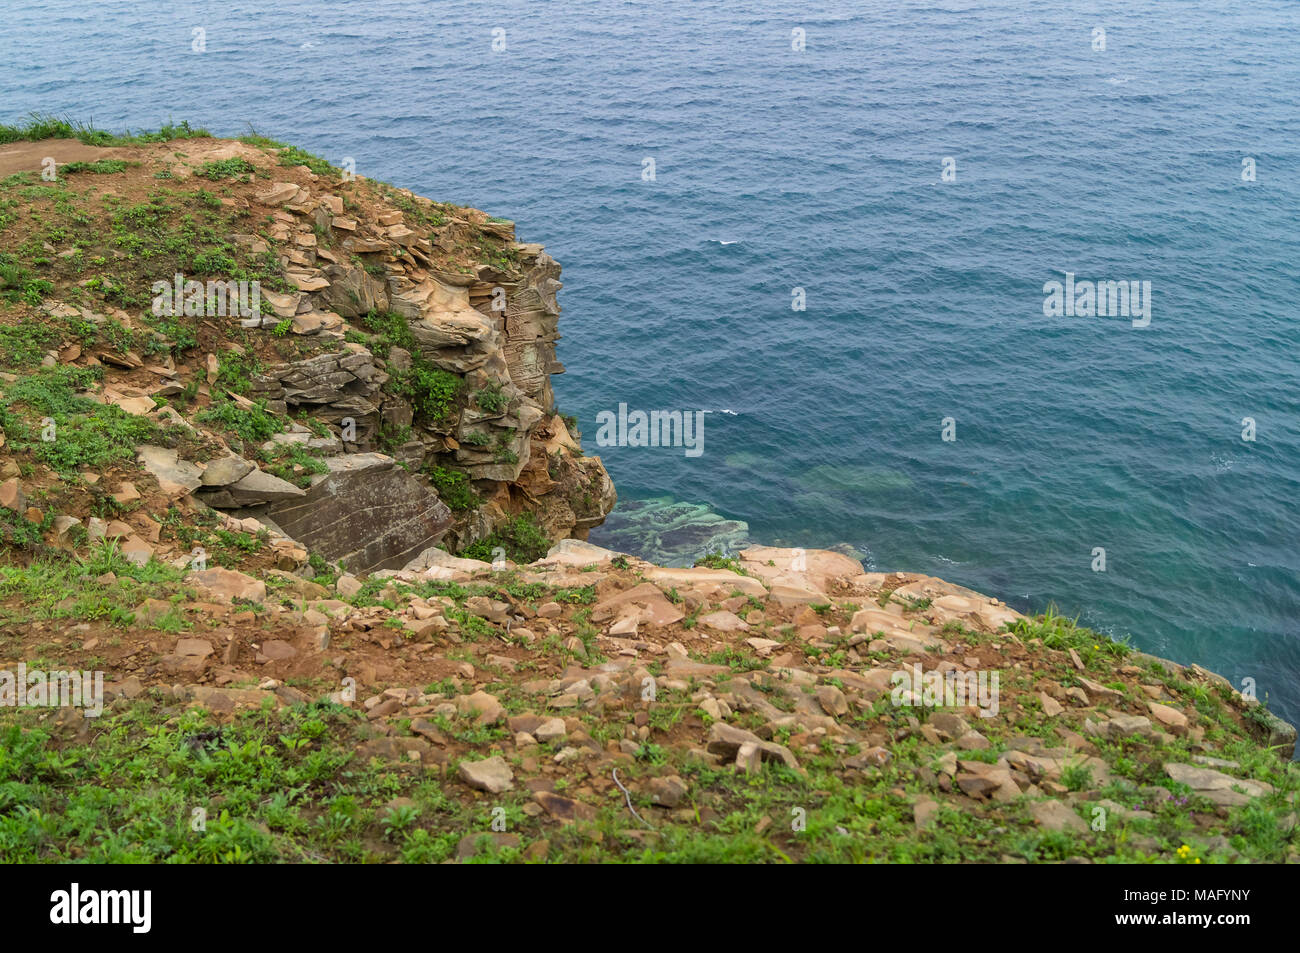 The Far Eastern landscape of one of the picturesque bays of the Russian Island. - Stock Image